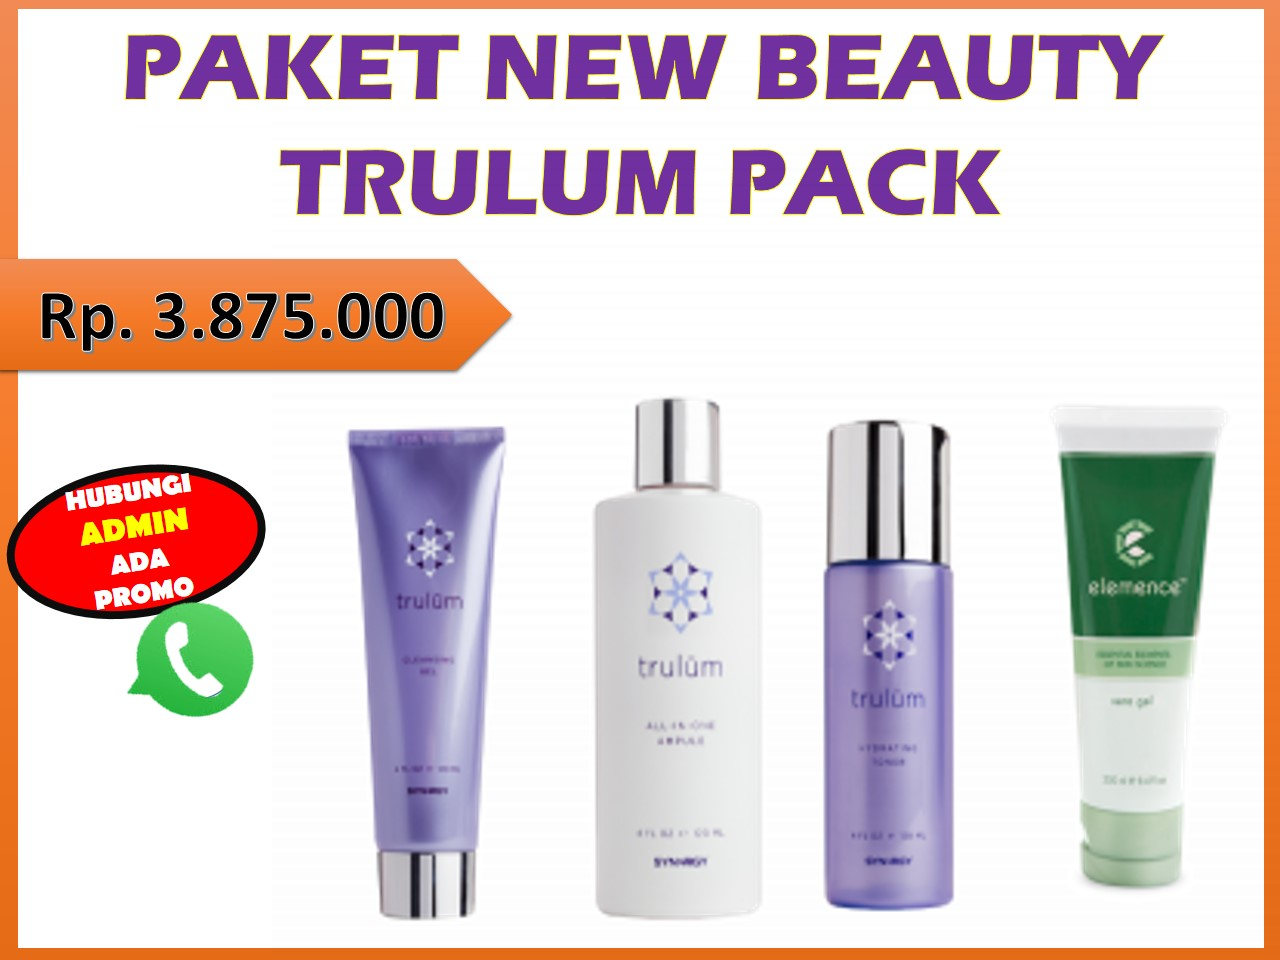 PAKET NEW BEAUTY TRULUM PACK